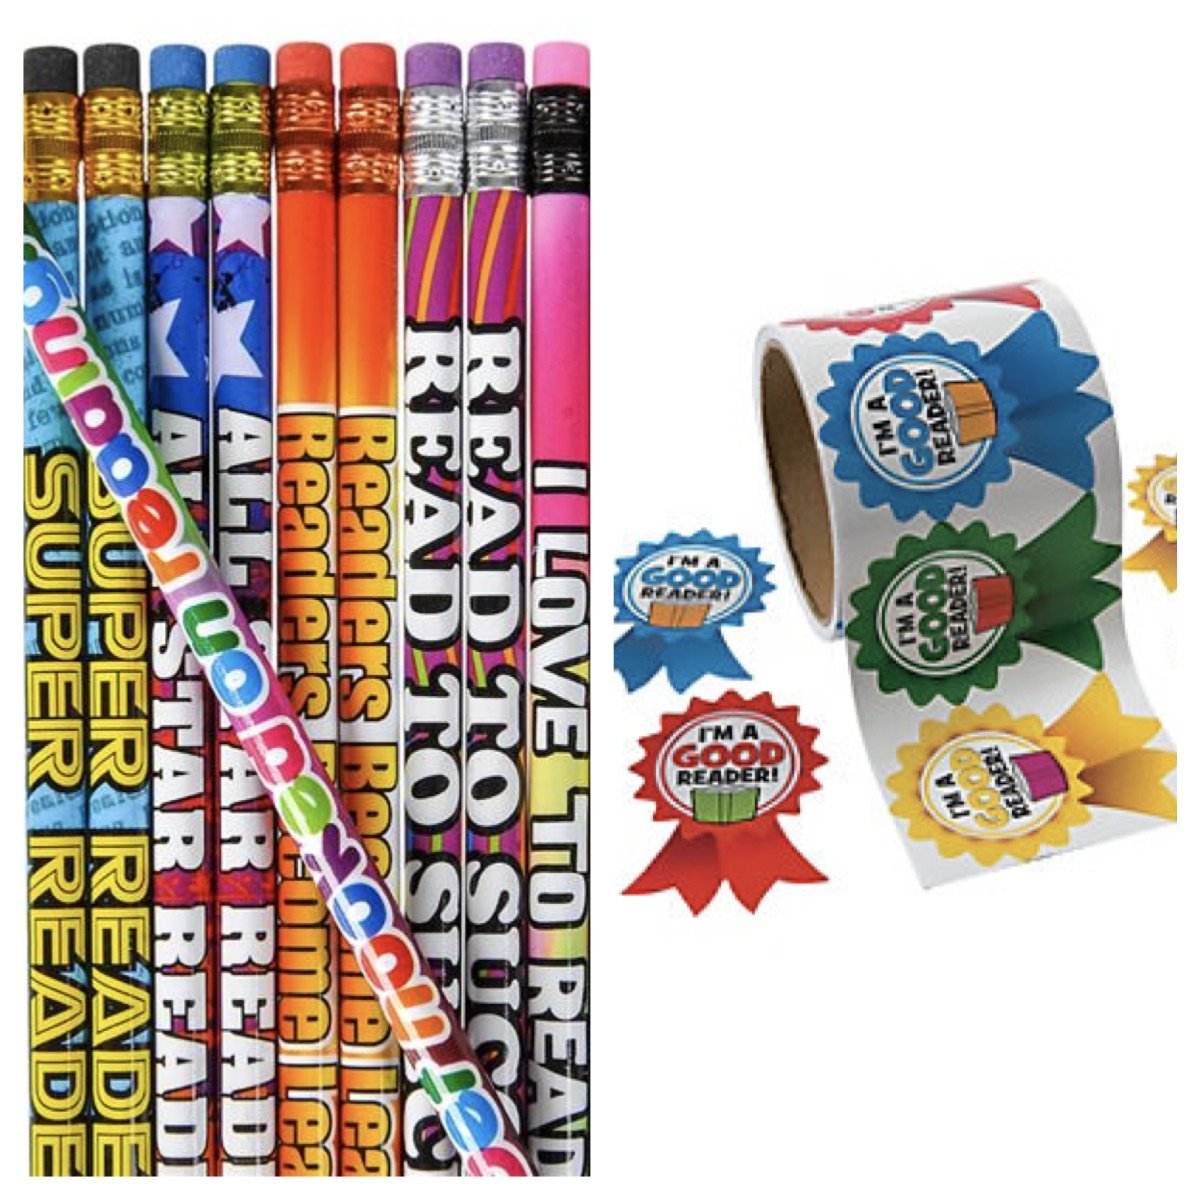 2 Dozen (24) Reading Pencils & 24 Jumbo I'm a Good Reader Ribbon Stickers - Teacher Classroom Rewards Recognition Motivation